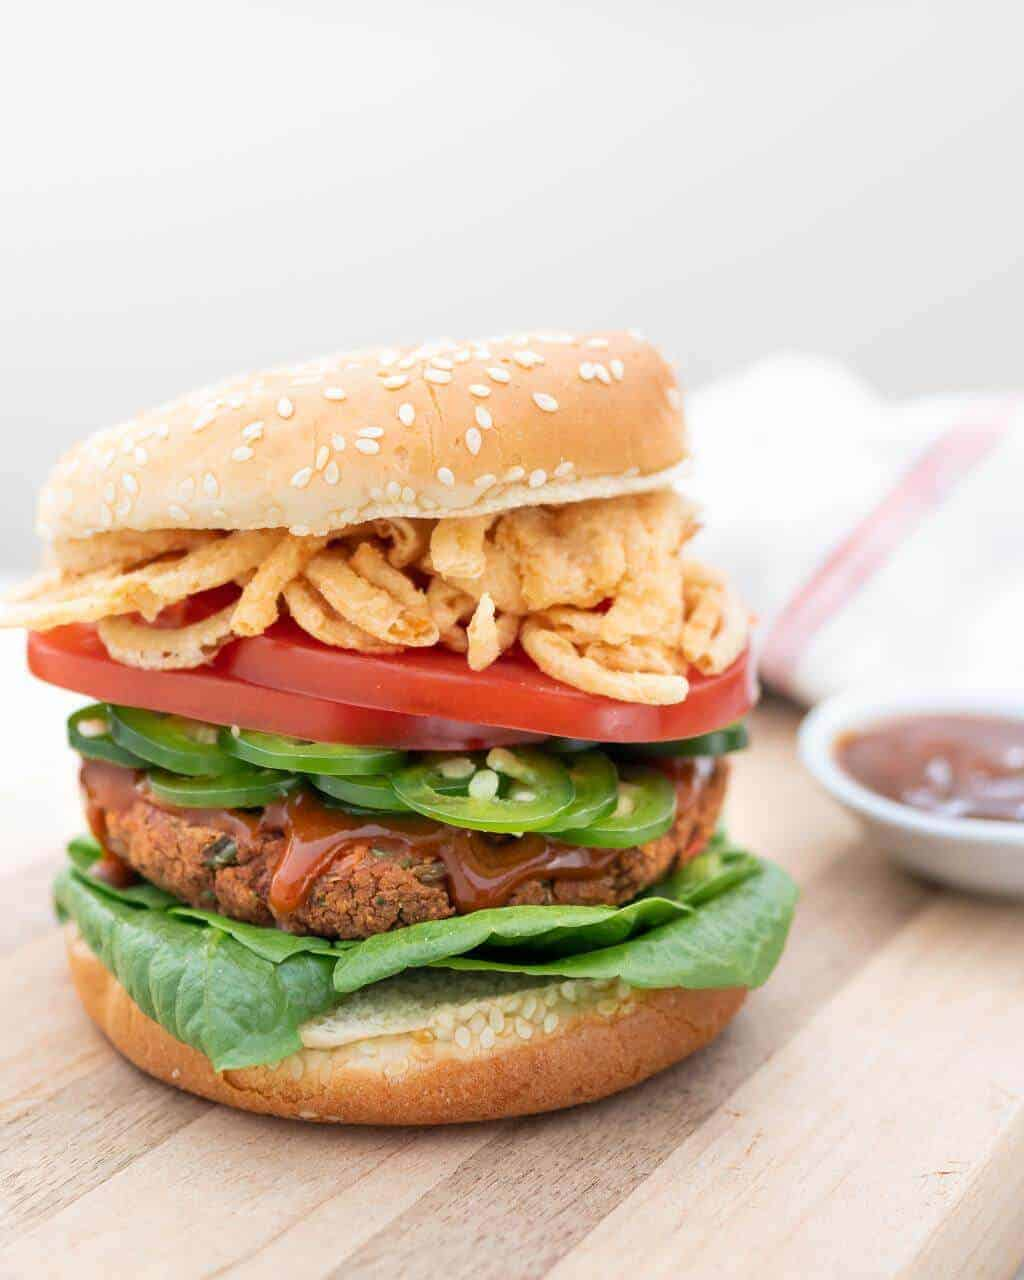 spicy red bean burger on wooden surface with white background